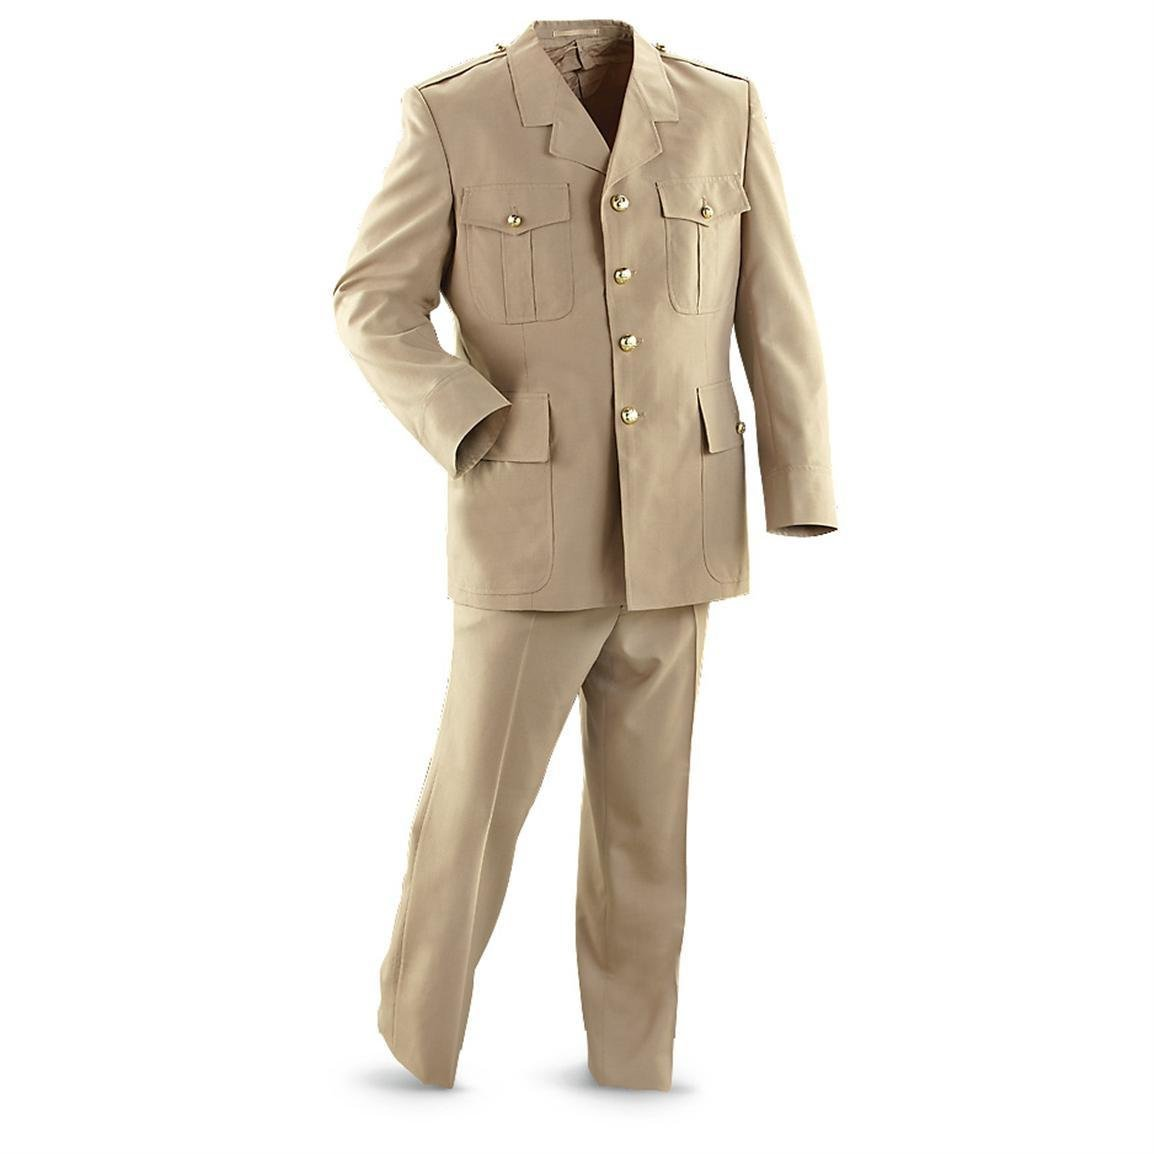 Belgian Army Genuine New Dress Uniform Jacket And Trousers